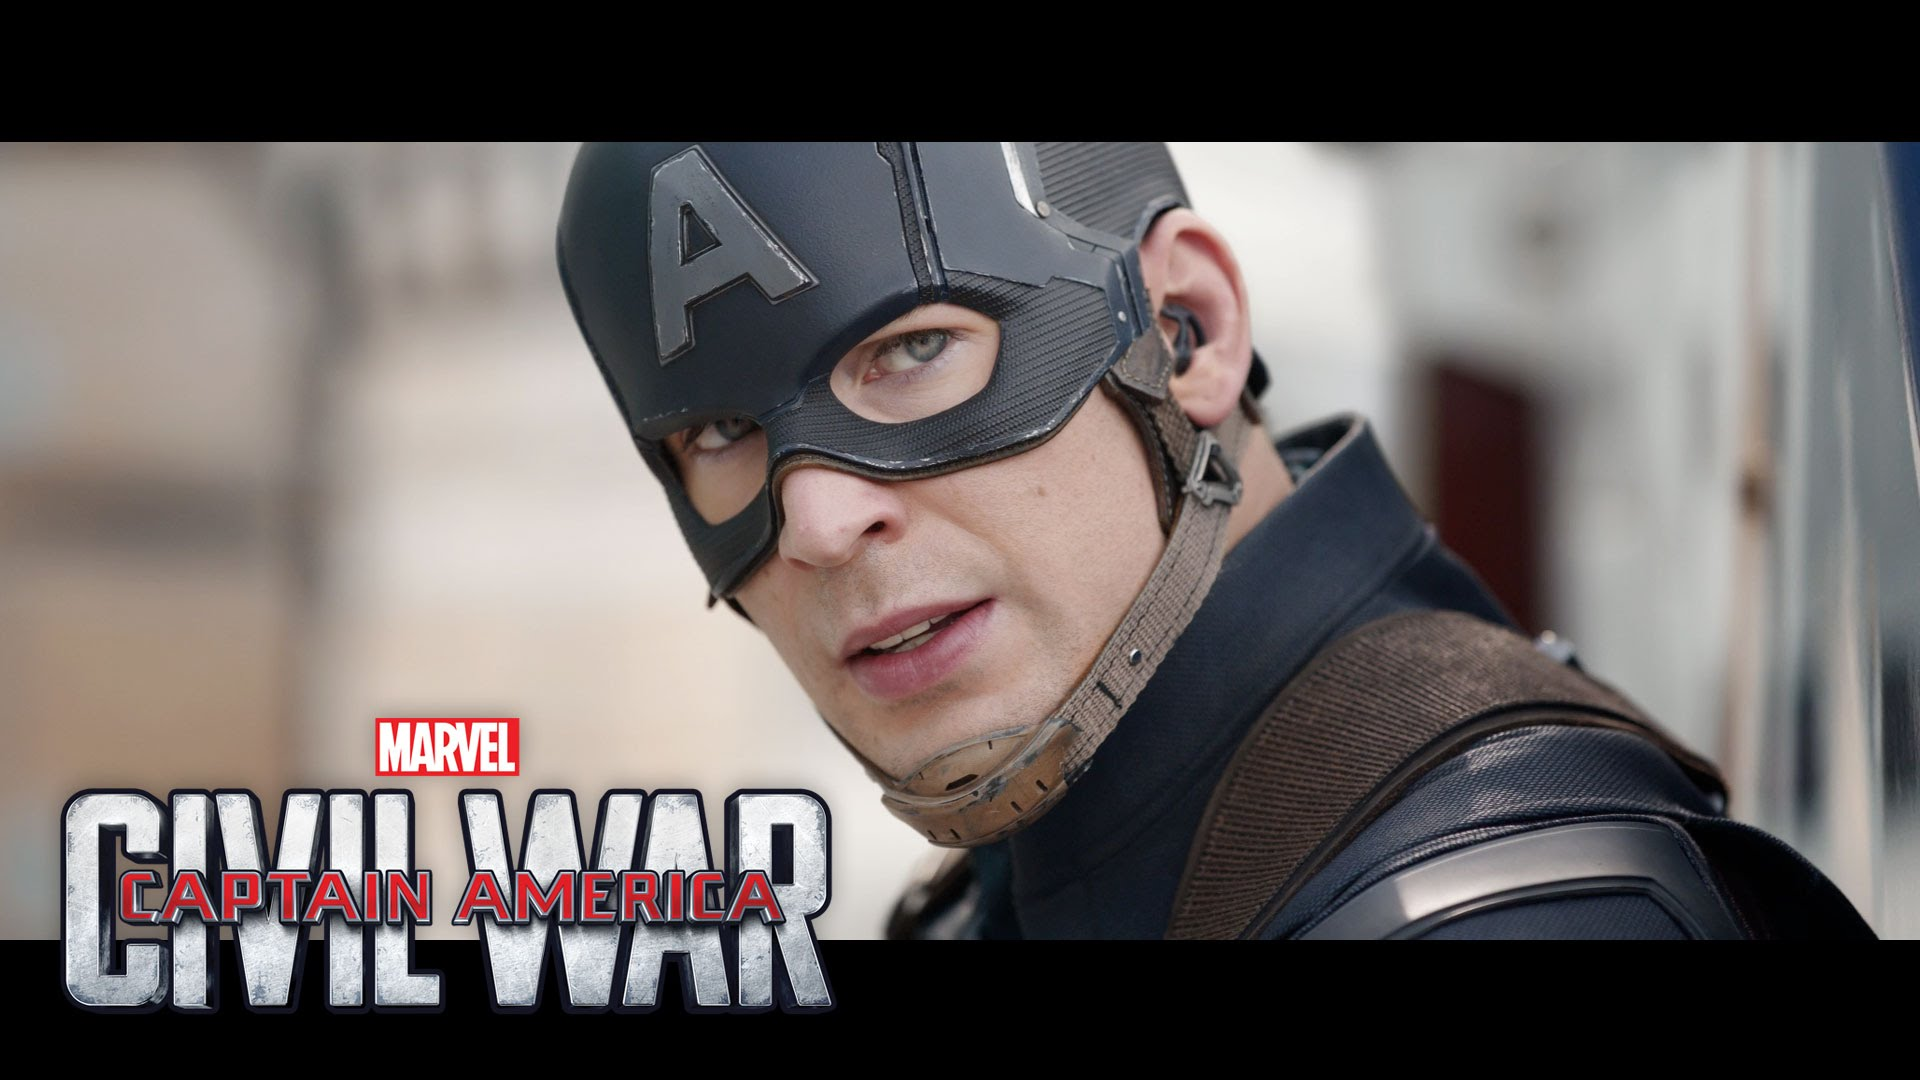 First Look At Spider-Man In Latest Captain America: Civil War Trailer